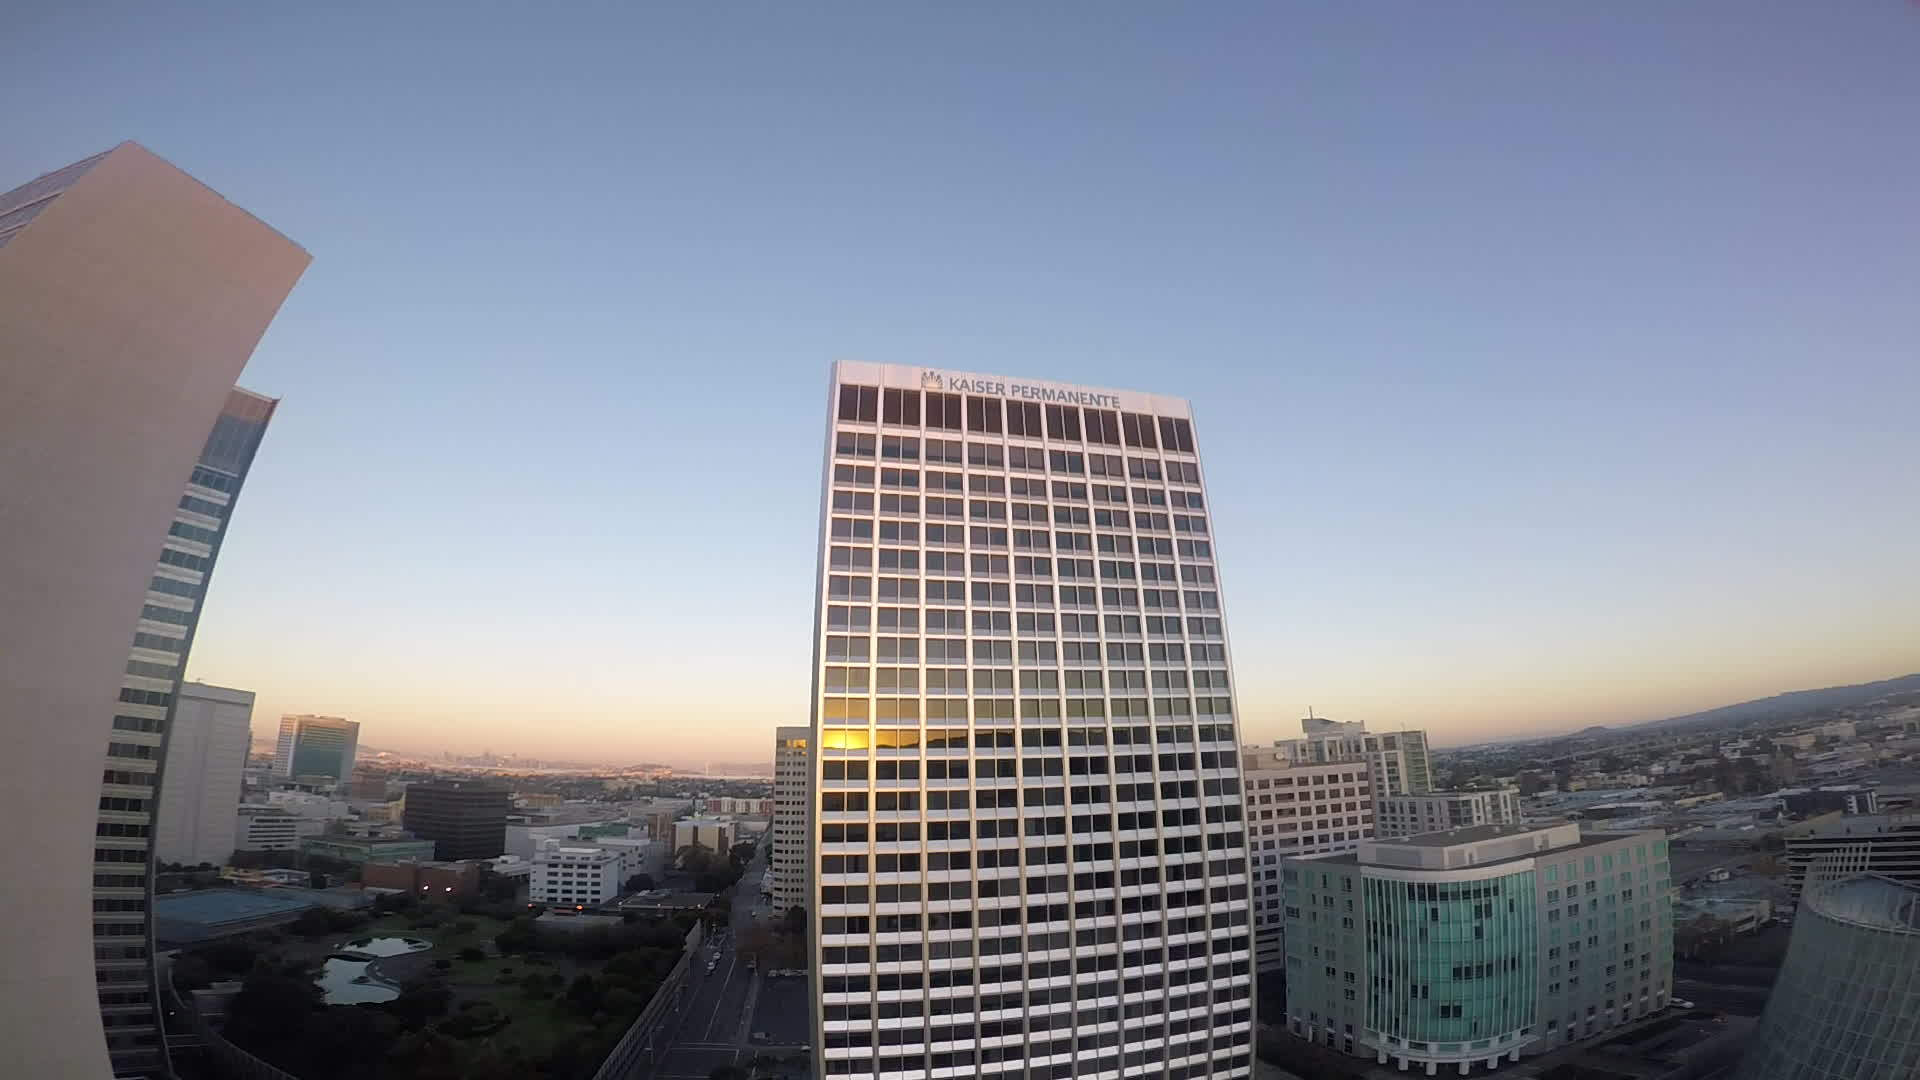 The tallest building in... Oakland. GIFs